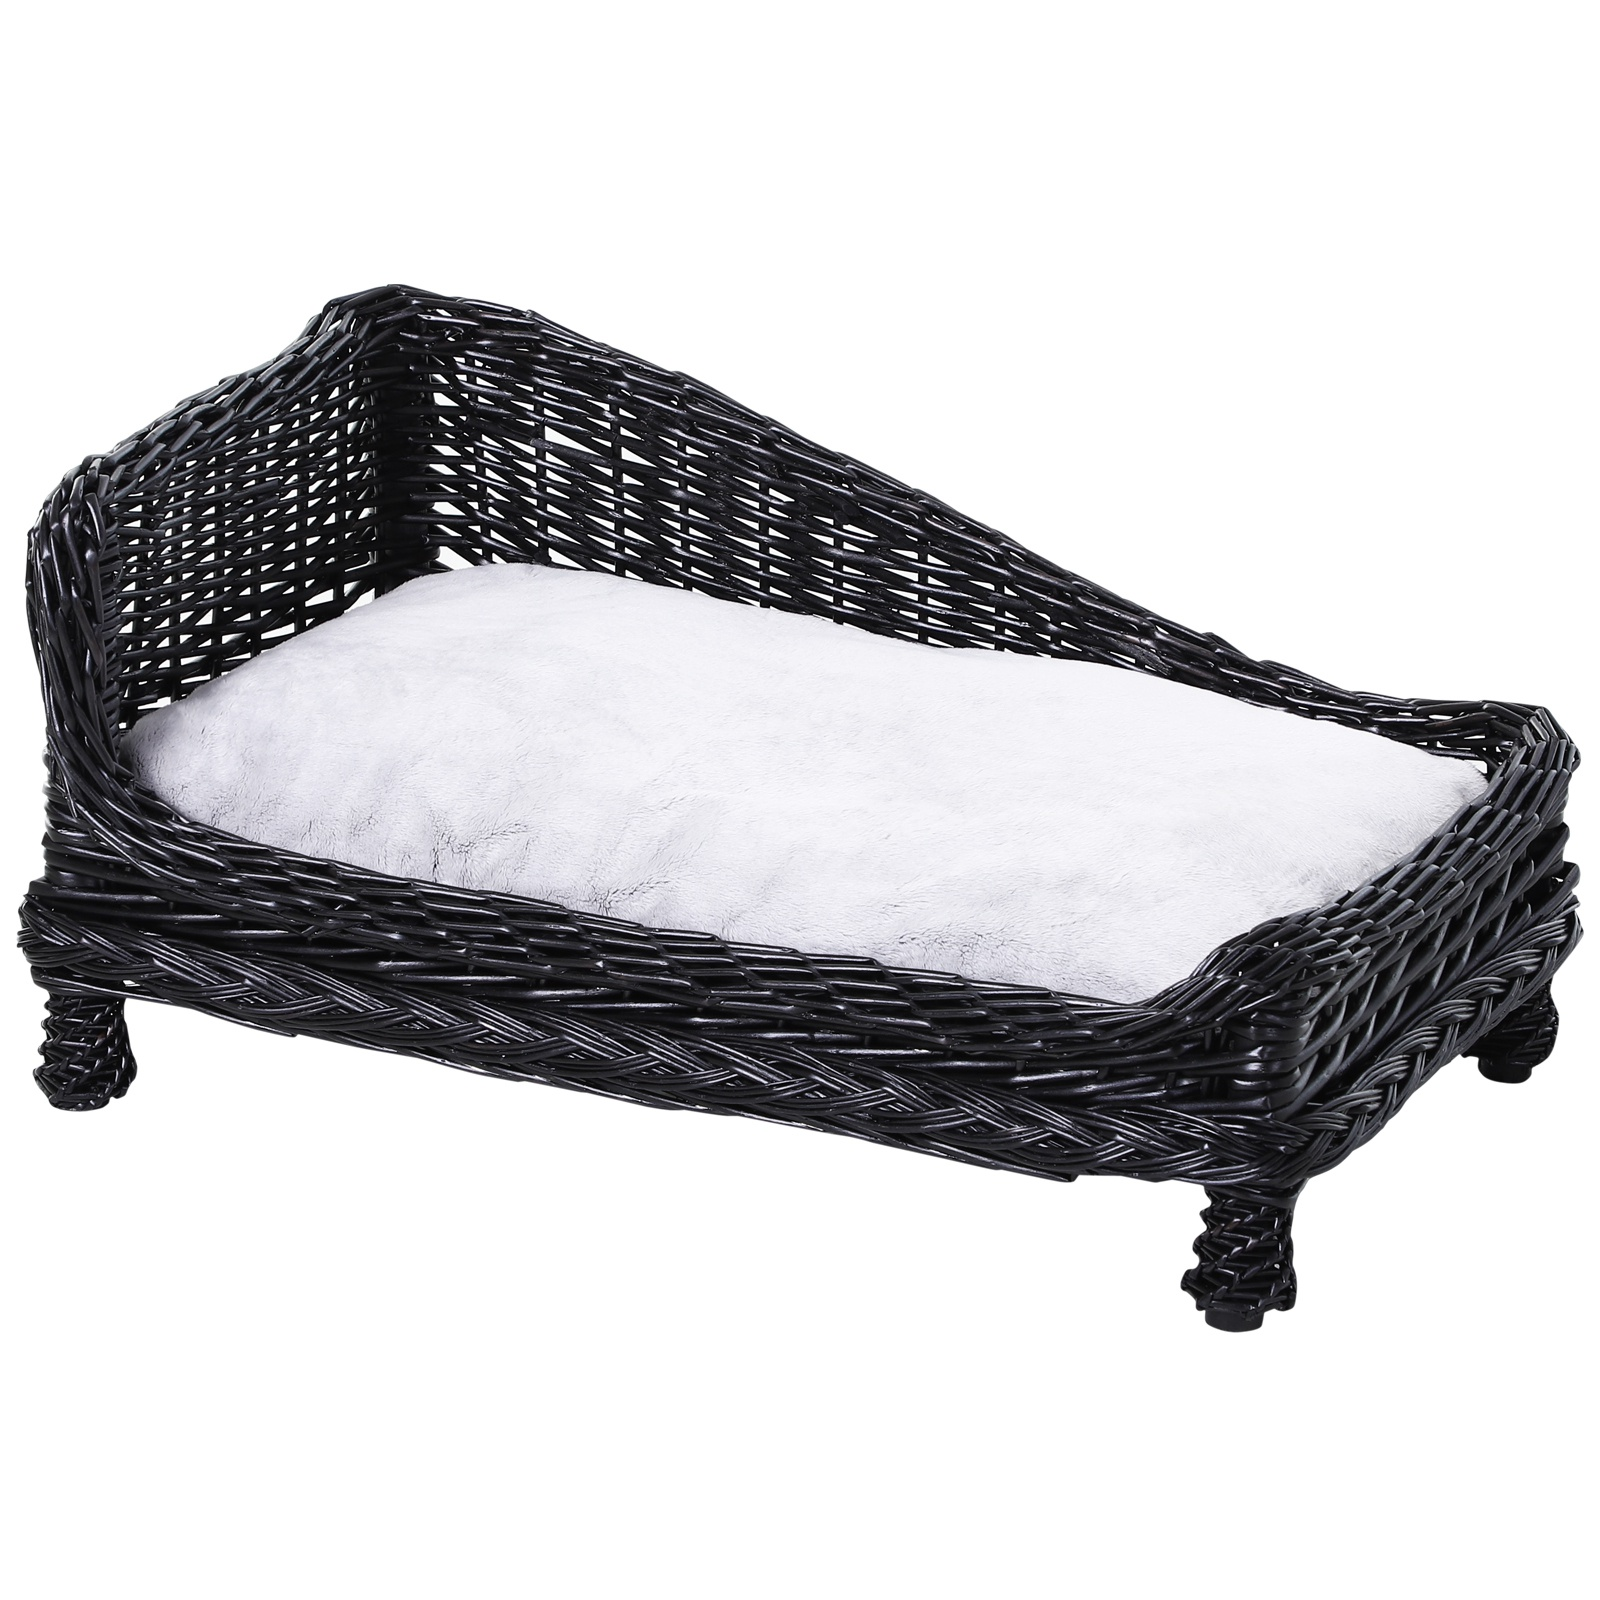 PawHut Lettino per cani Animali Domestici Chaise Longue in Vimini con Cuscino Nero